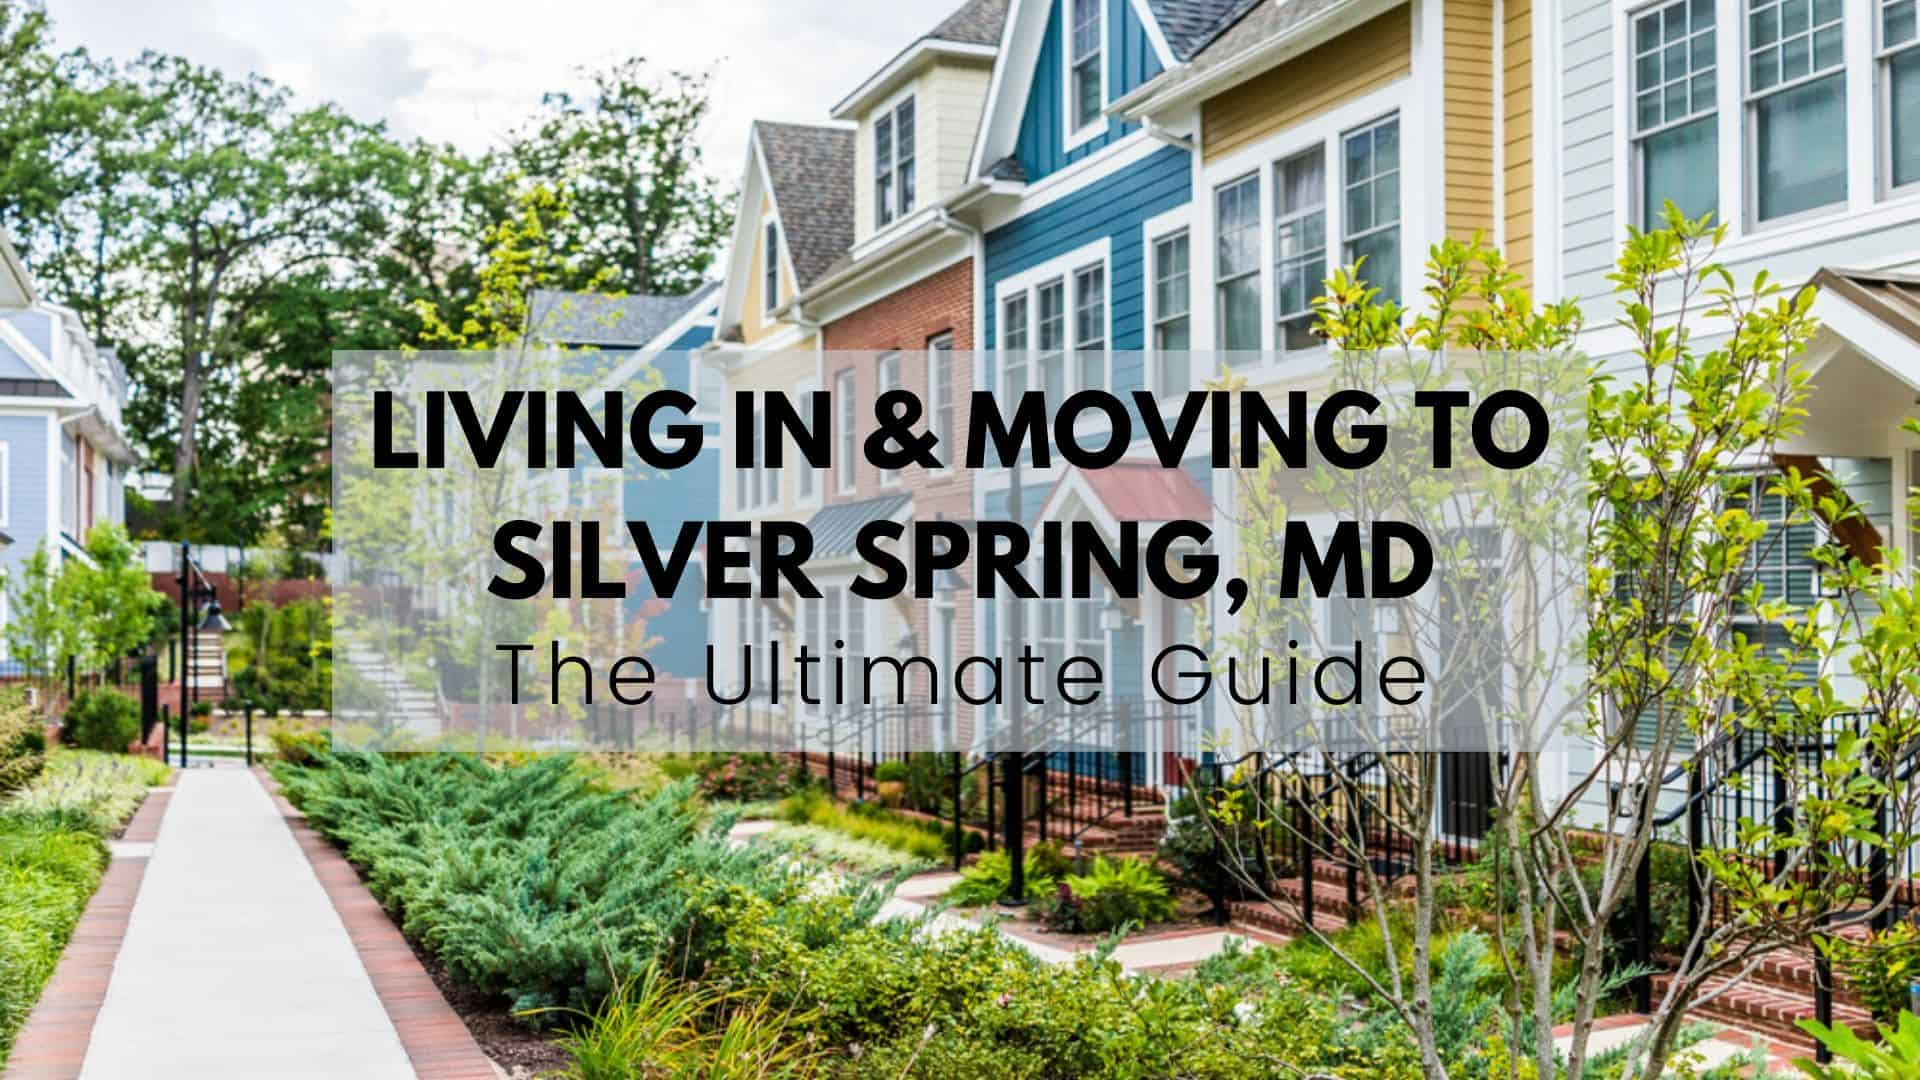 Living in & Moving to Silver Spring, MD